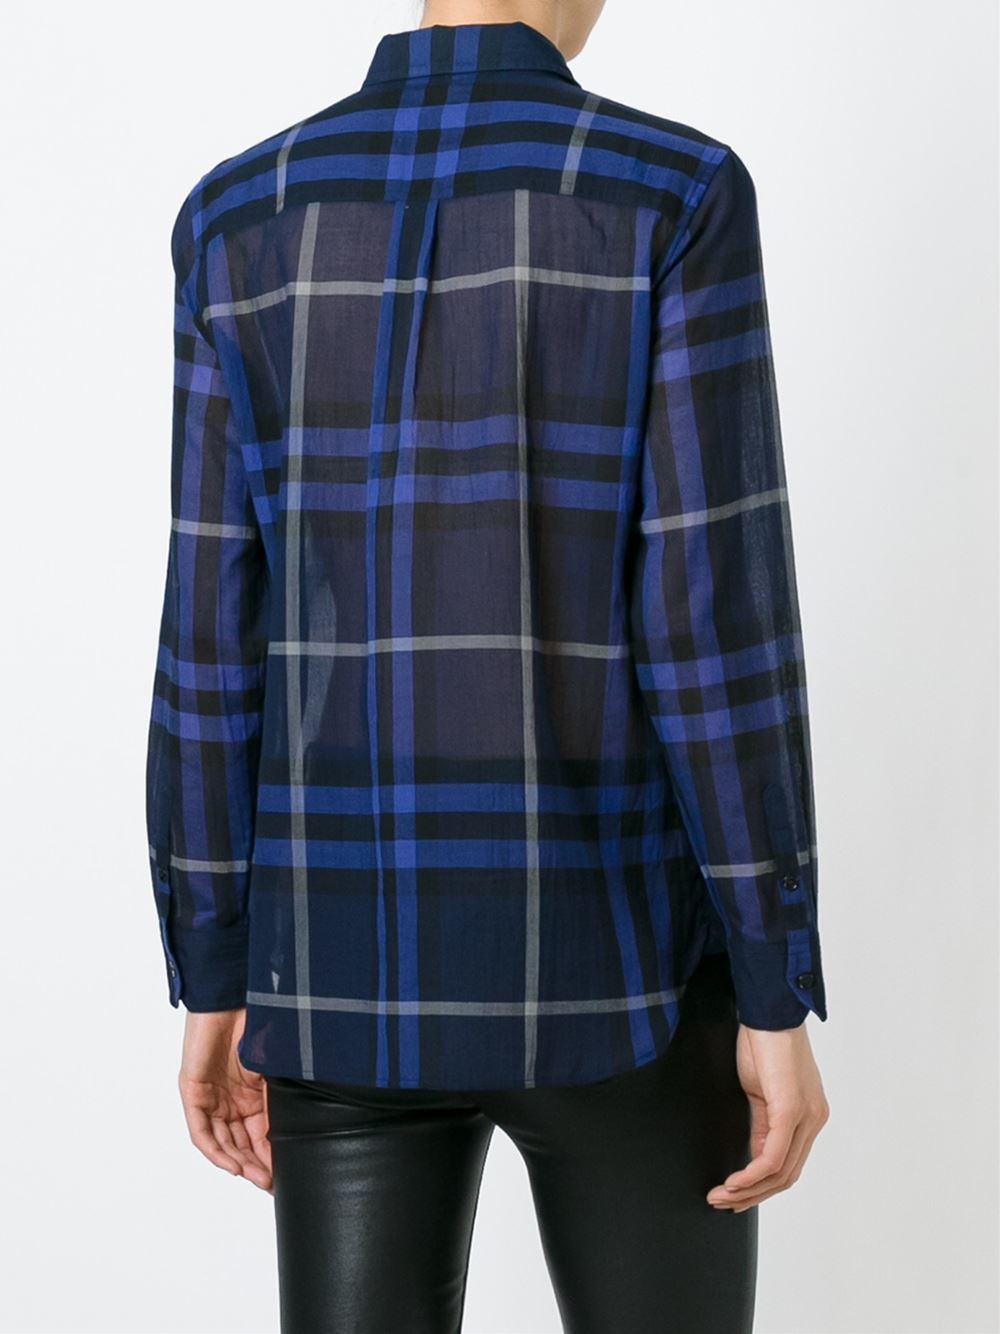 Burberry brit checked shirt in blue lyst for Burberry brit checked shirt